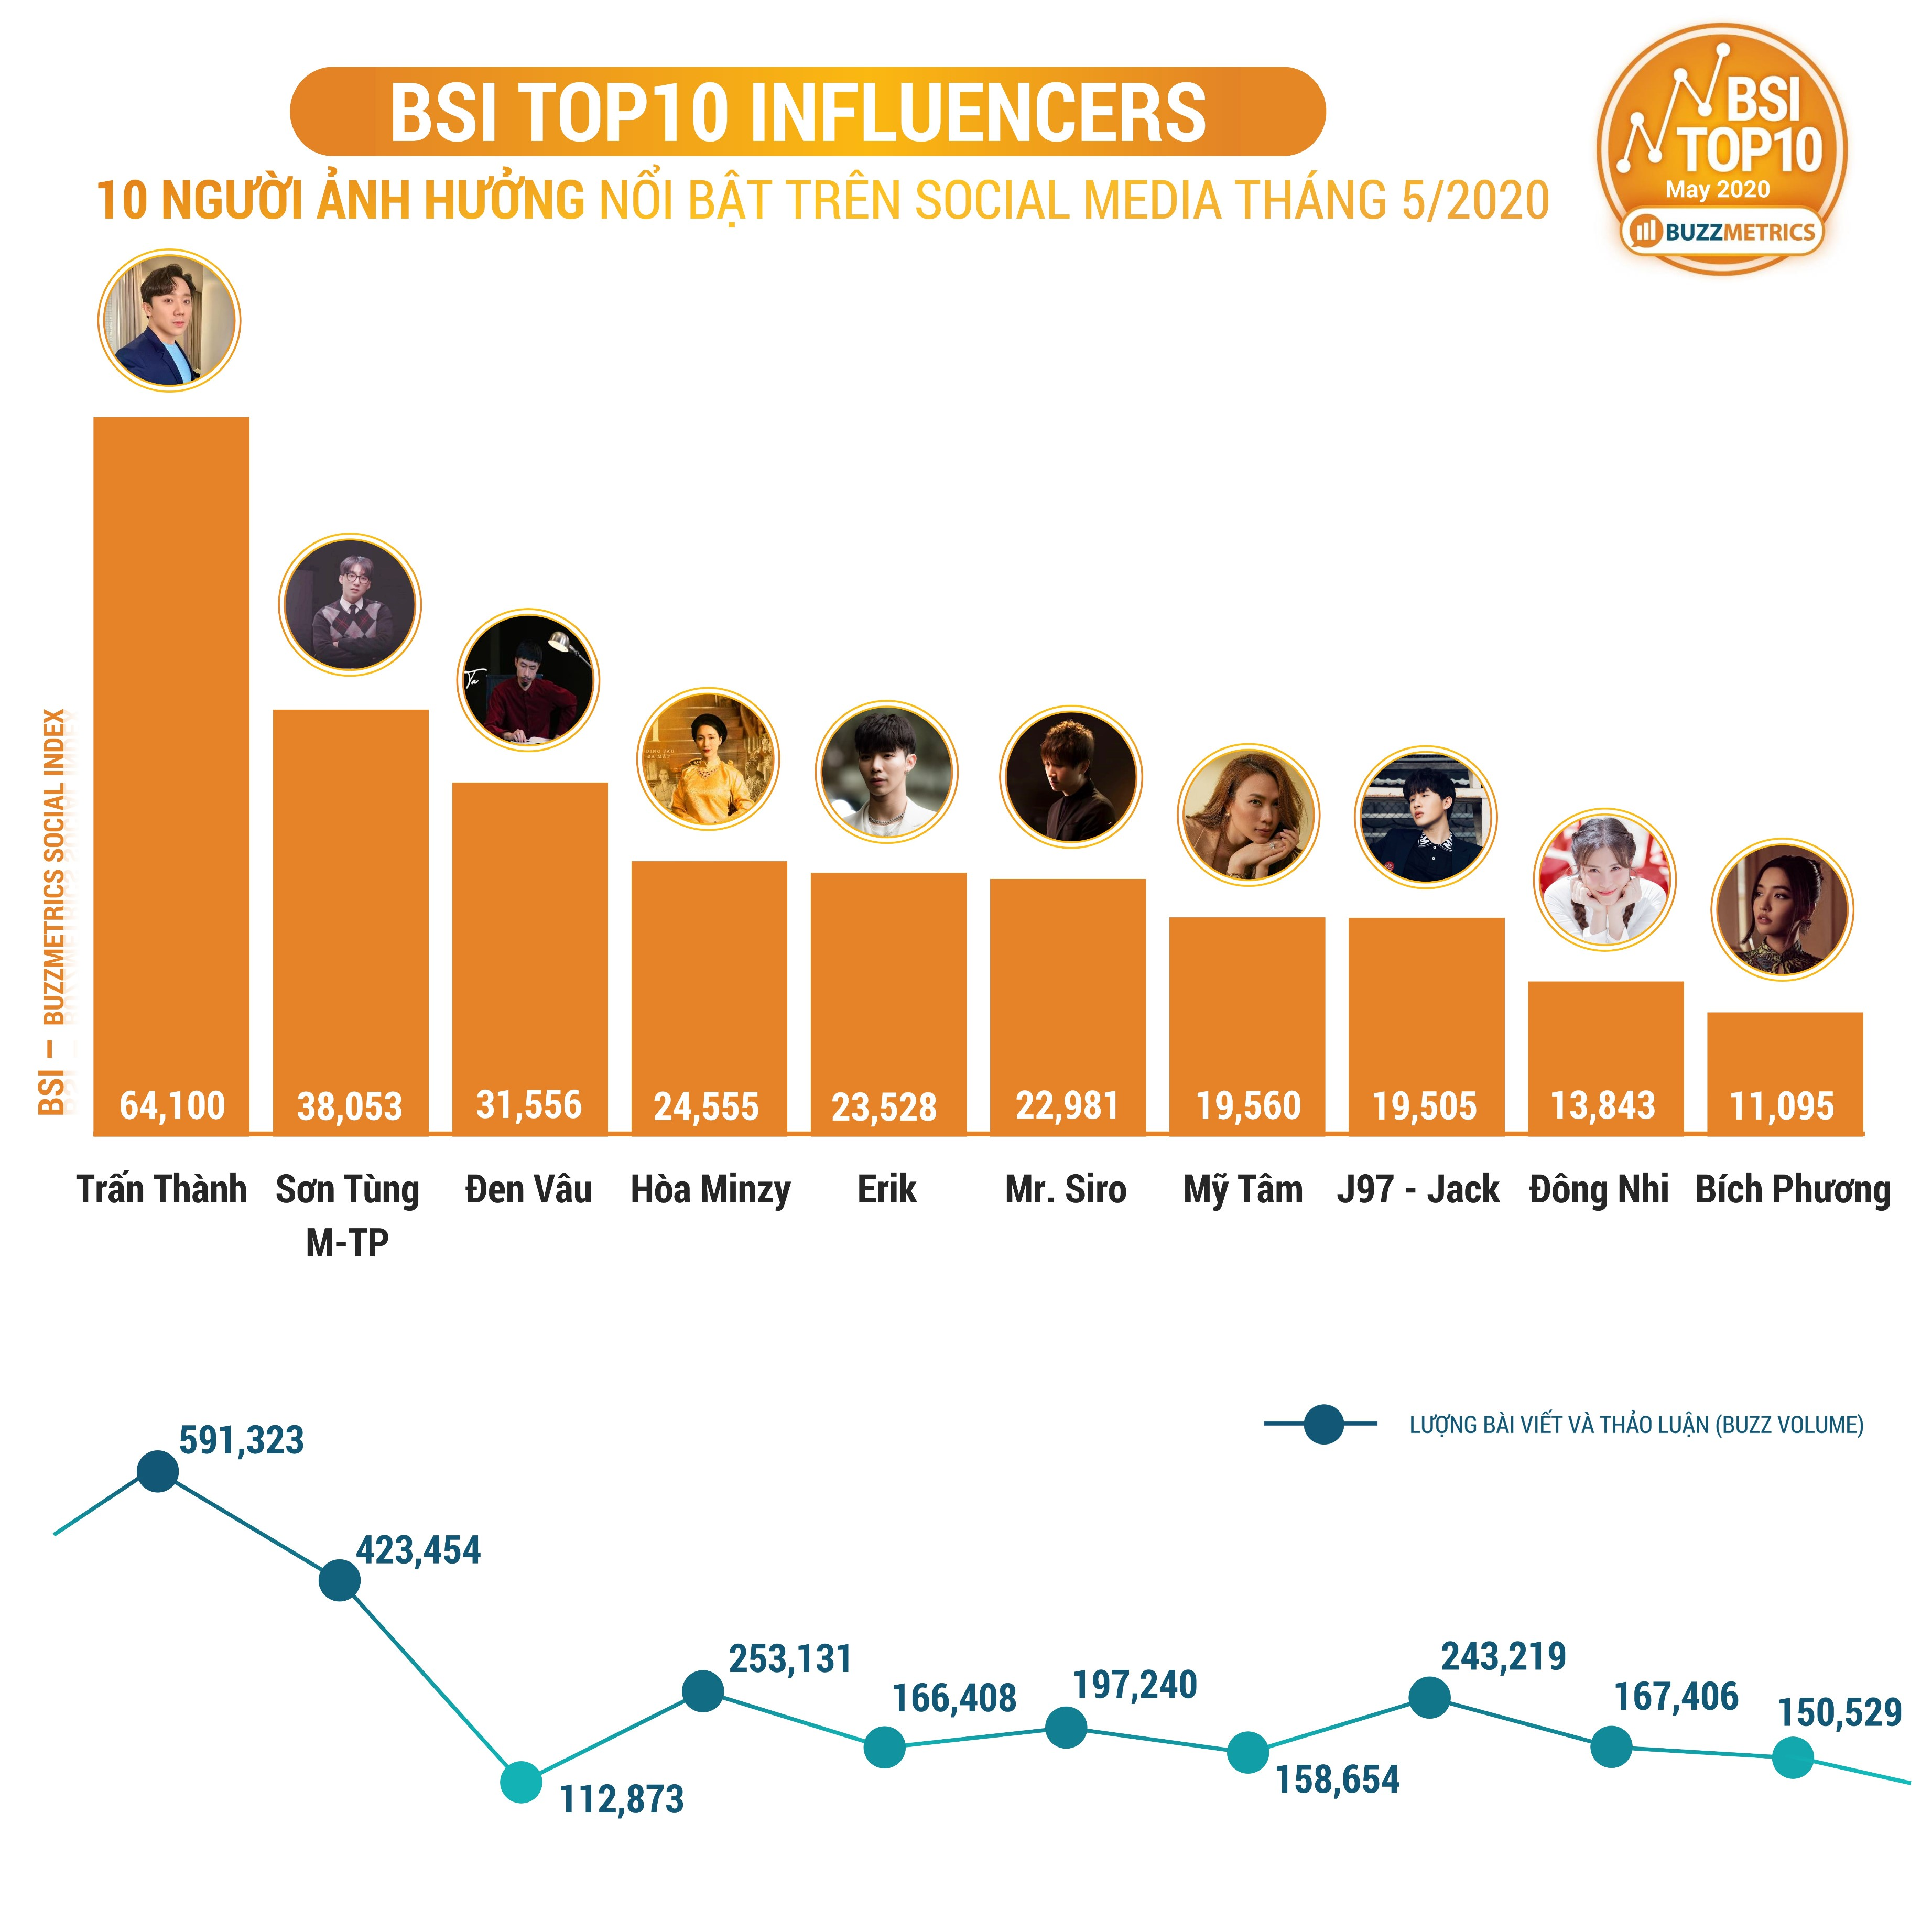 BSI Top10 MAY 2020 INFLUENCERS chart